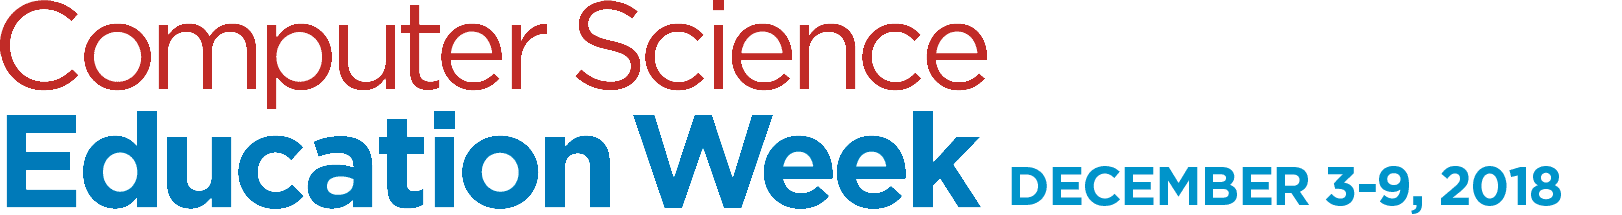 Computer Science Education Week December 3-9, 2018